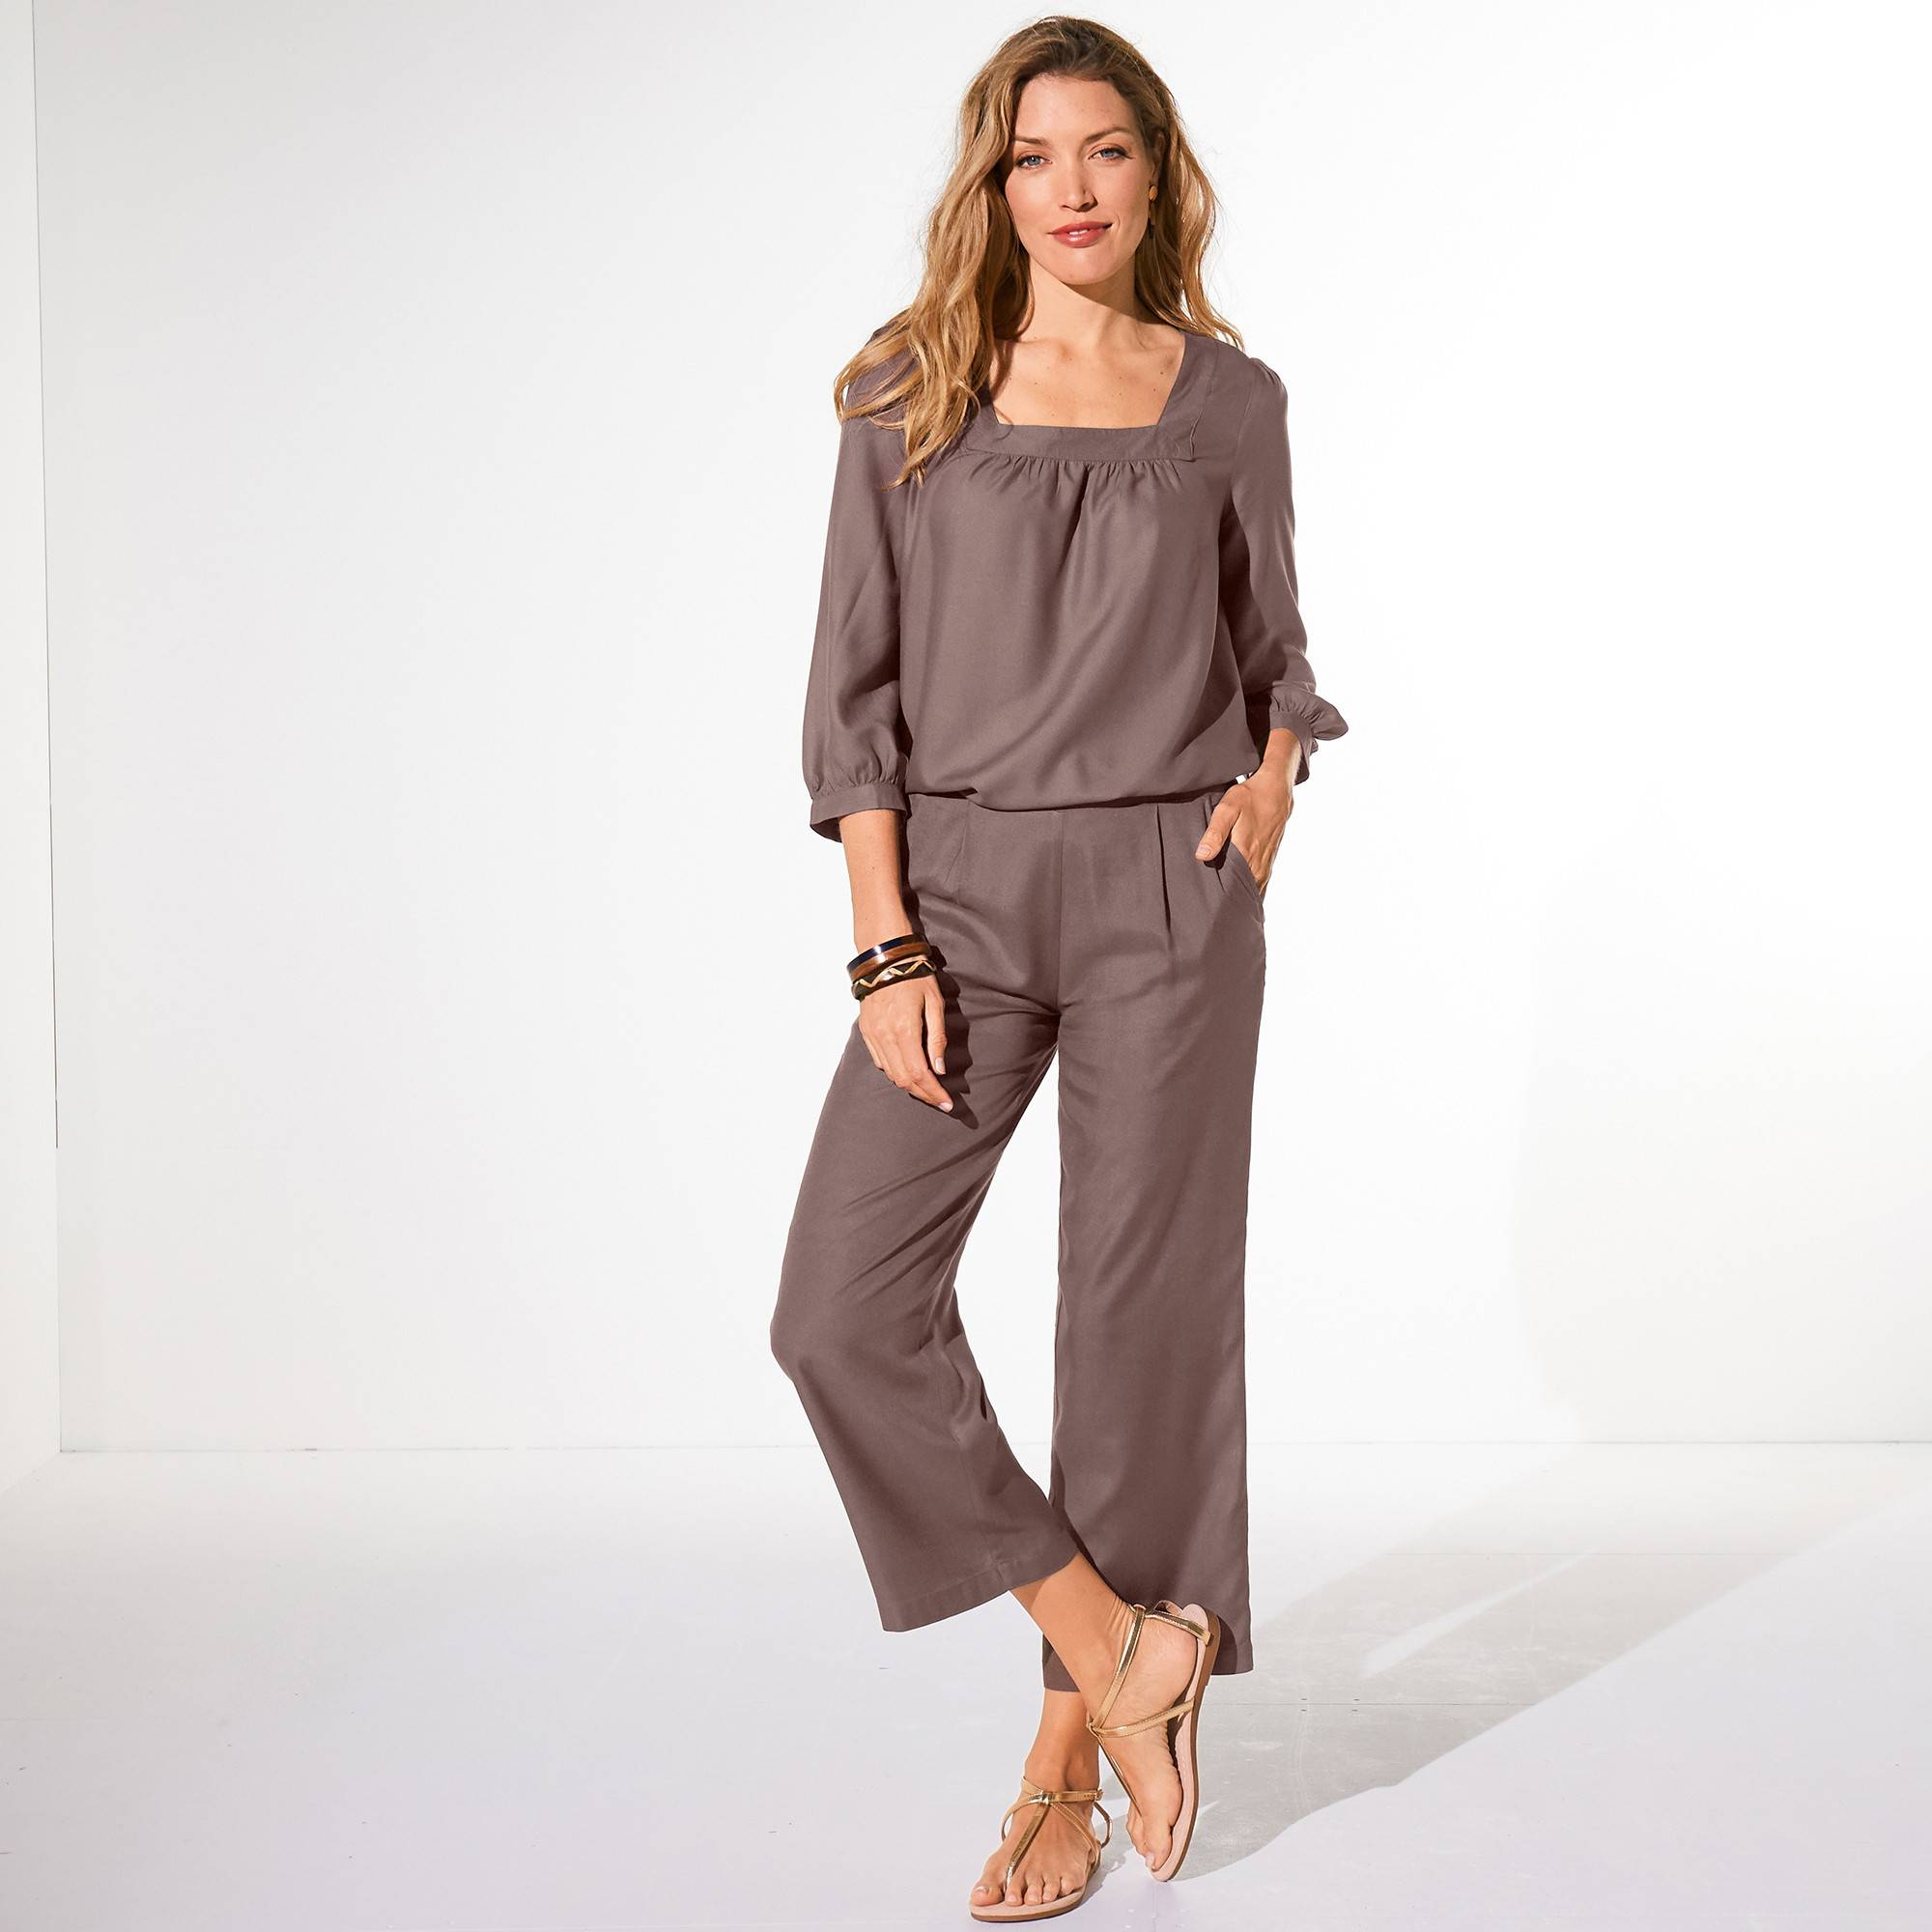 Blouse col carré unie - taupe - Taille : 48 - Blancheporte